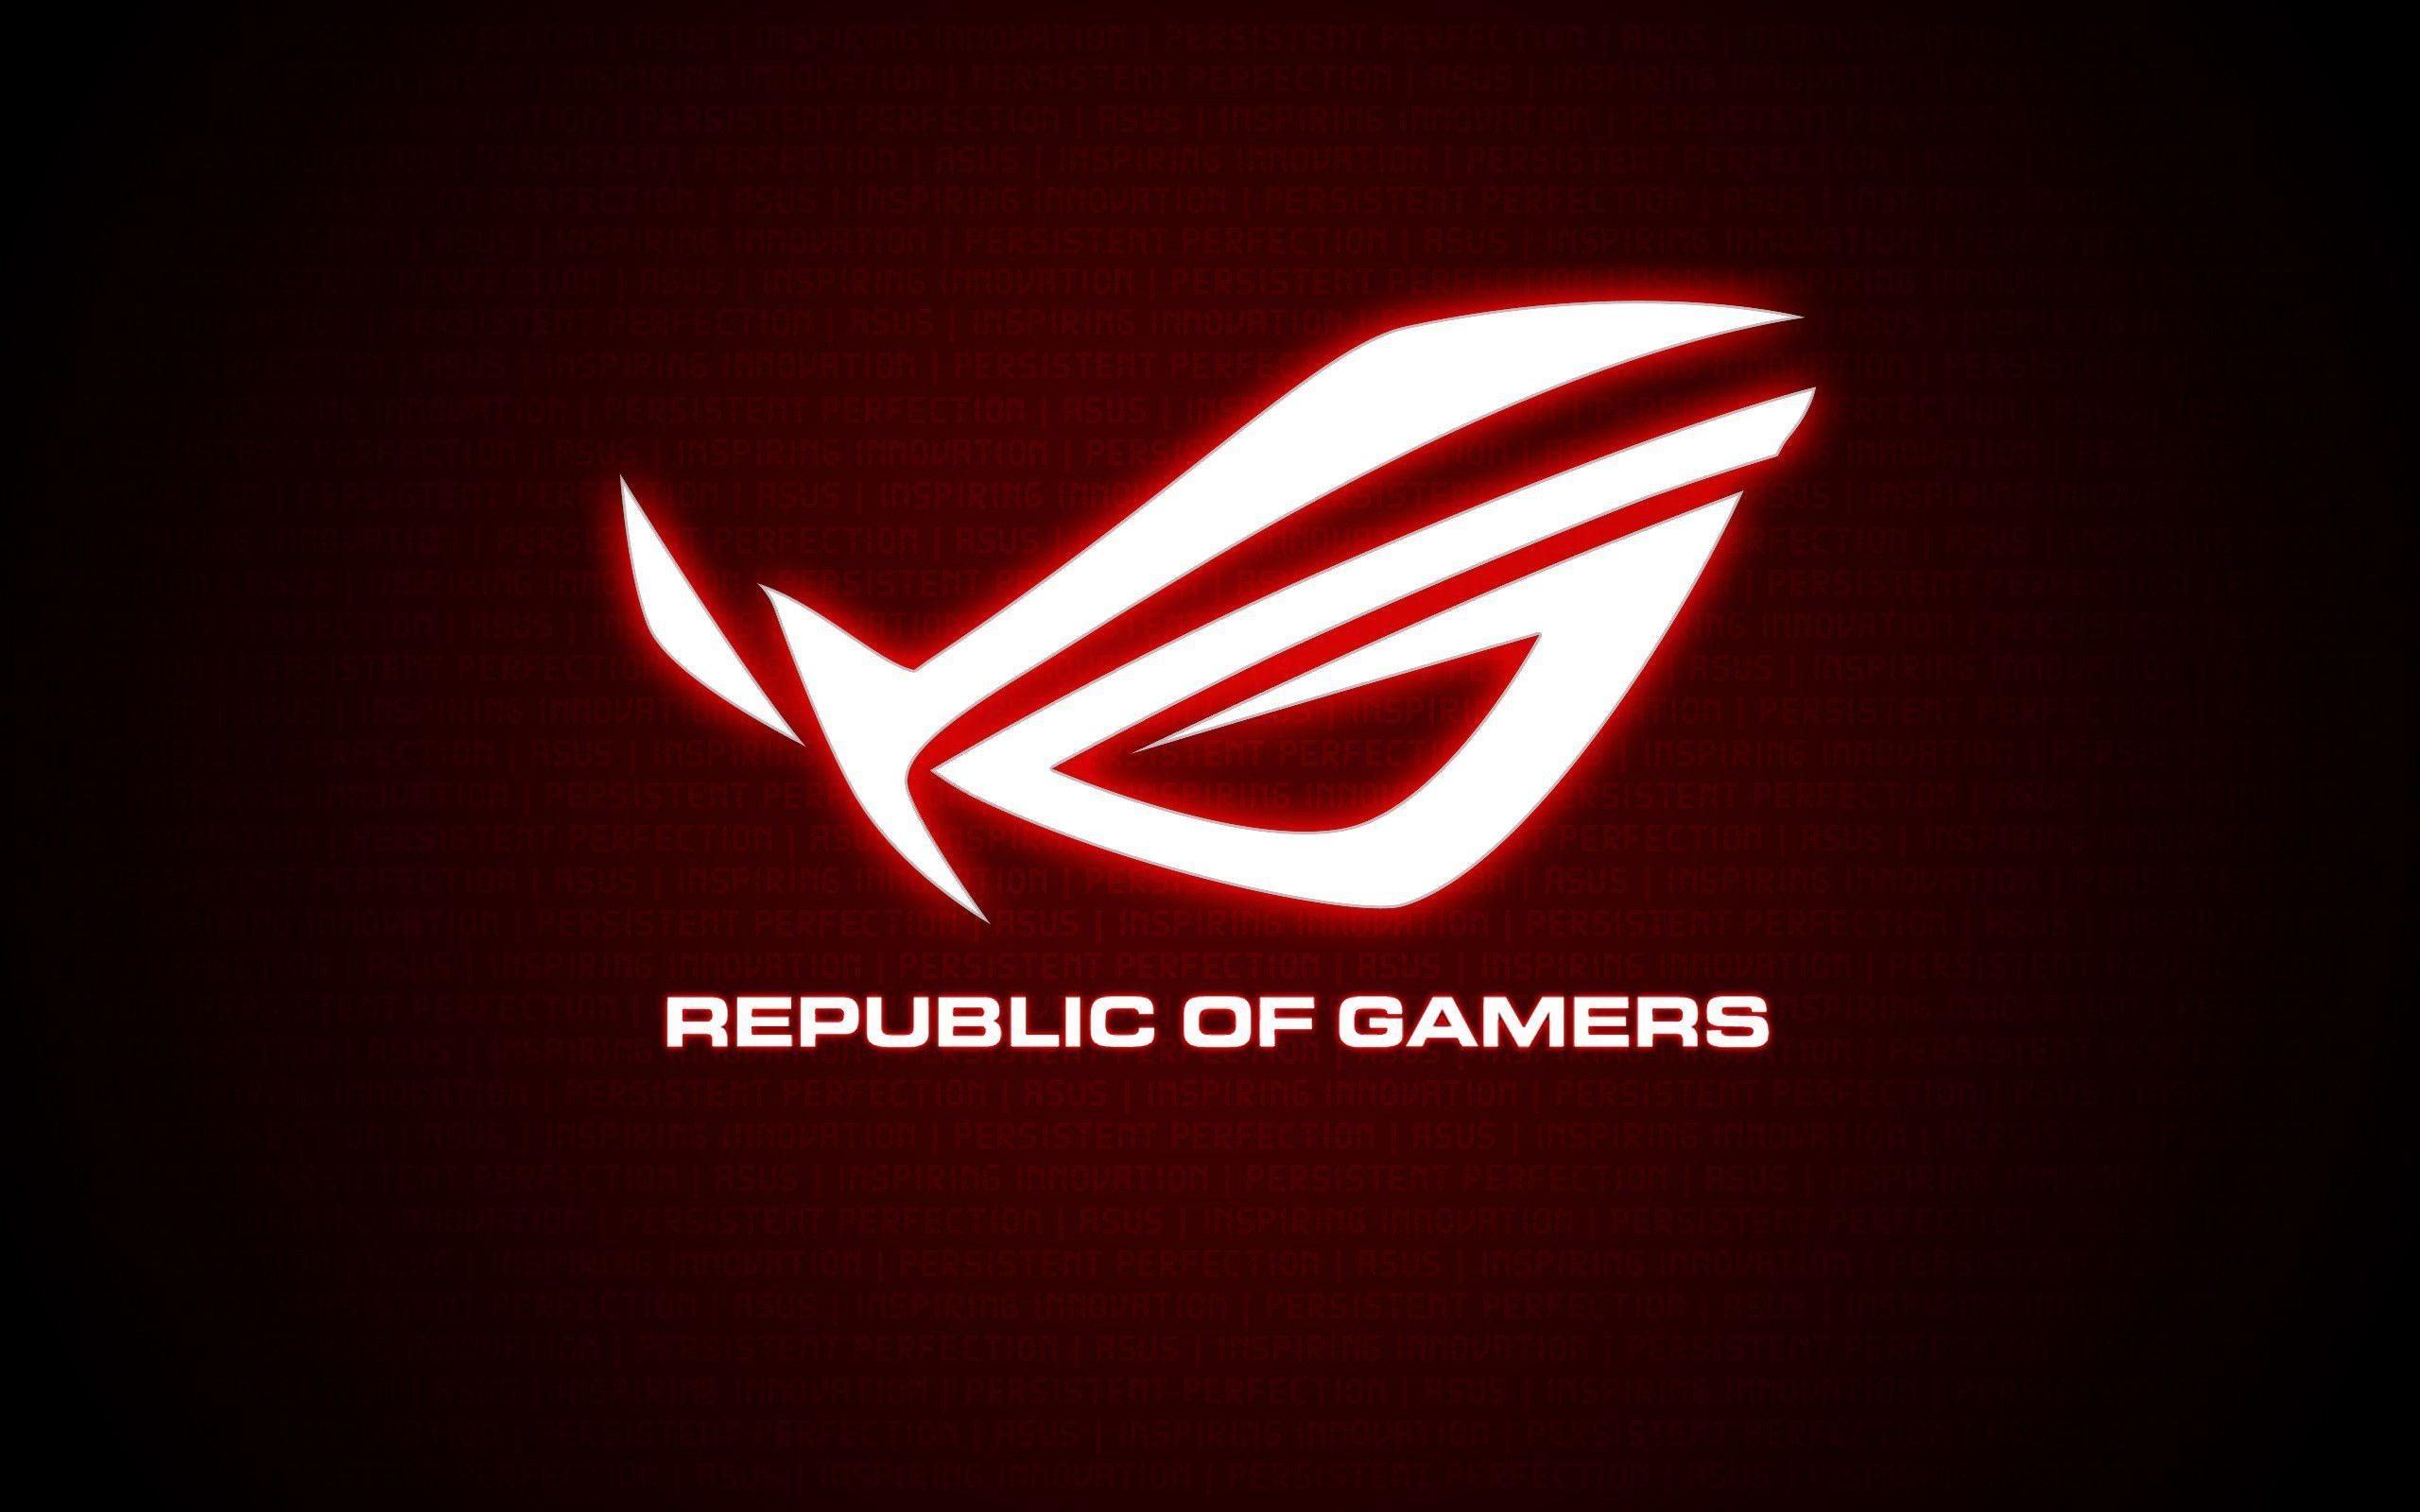 Rog Neon Logo 5k Hd Computer 4k Wallpapers Images: Republic Of Gamers Wallpapers